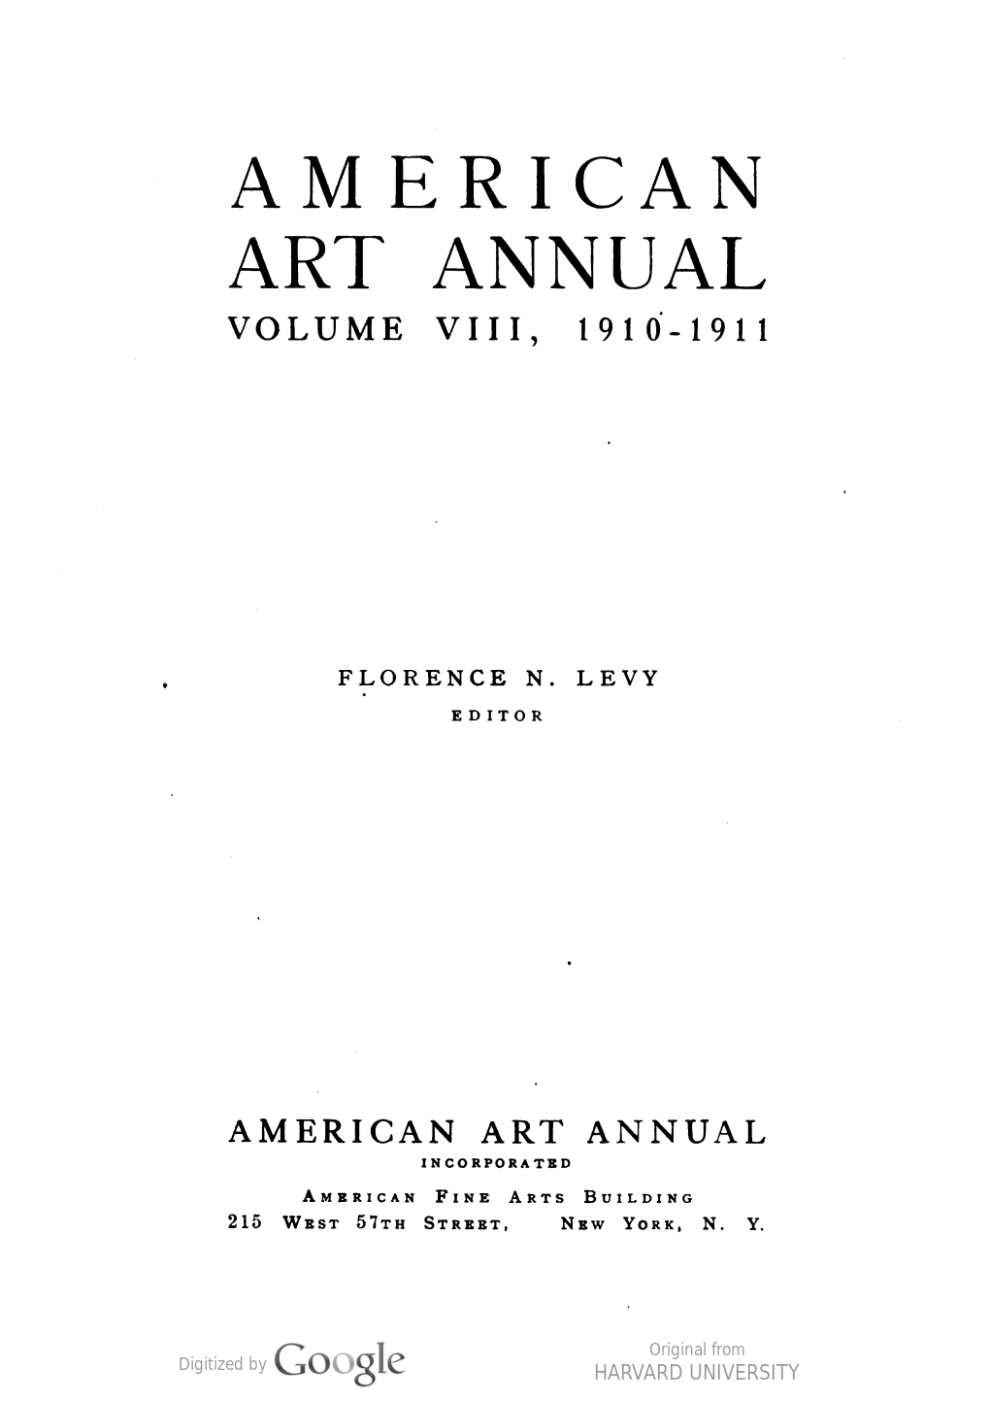 American art annual : Volume VIII, 1910-1911 edited by Florence N. Levy, American Art Annual Incorporated, New York, NY, 1911